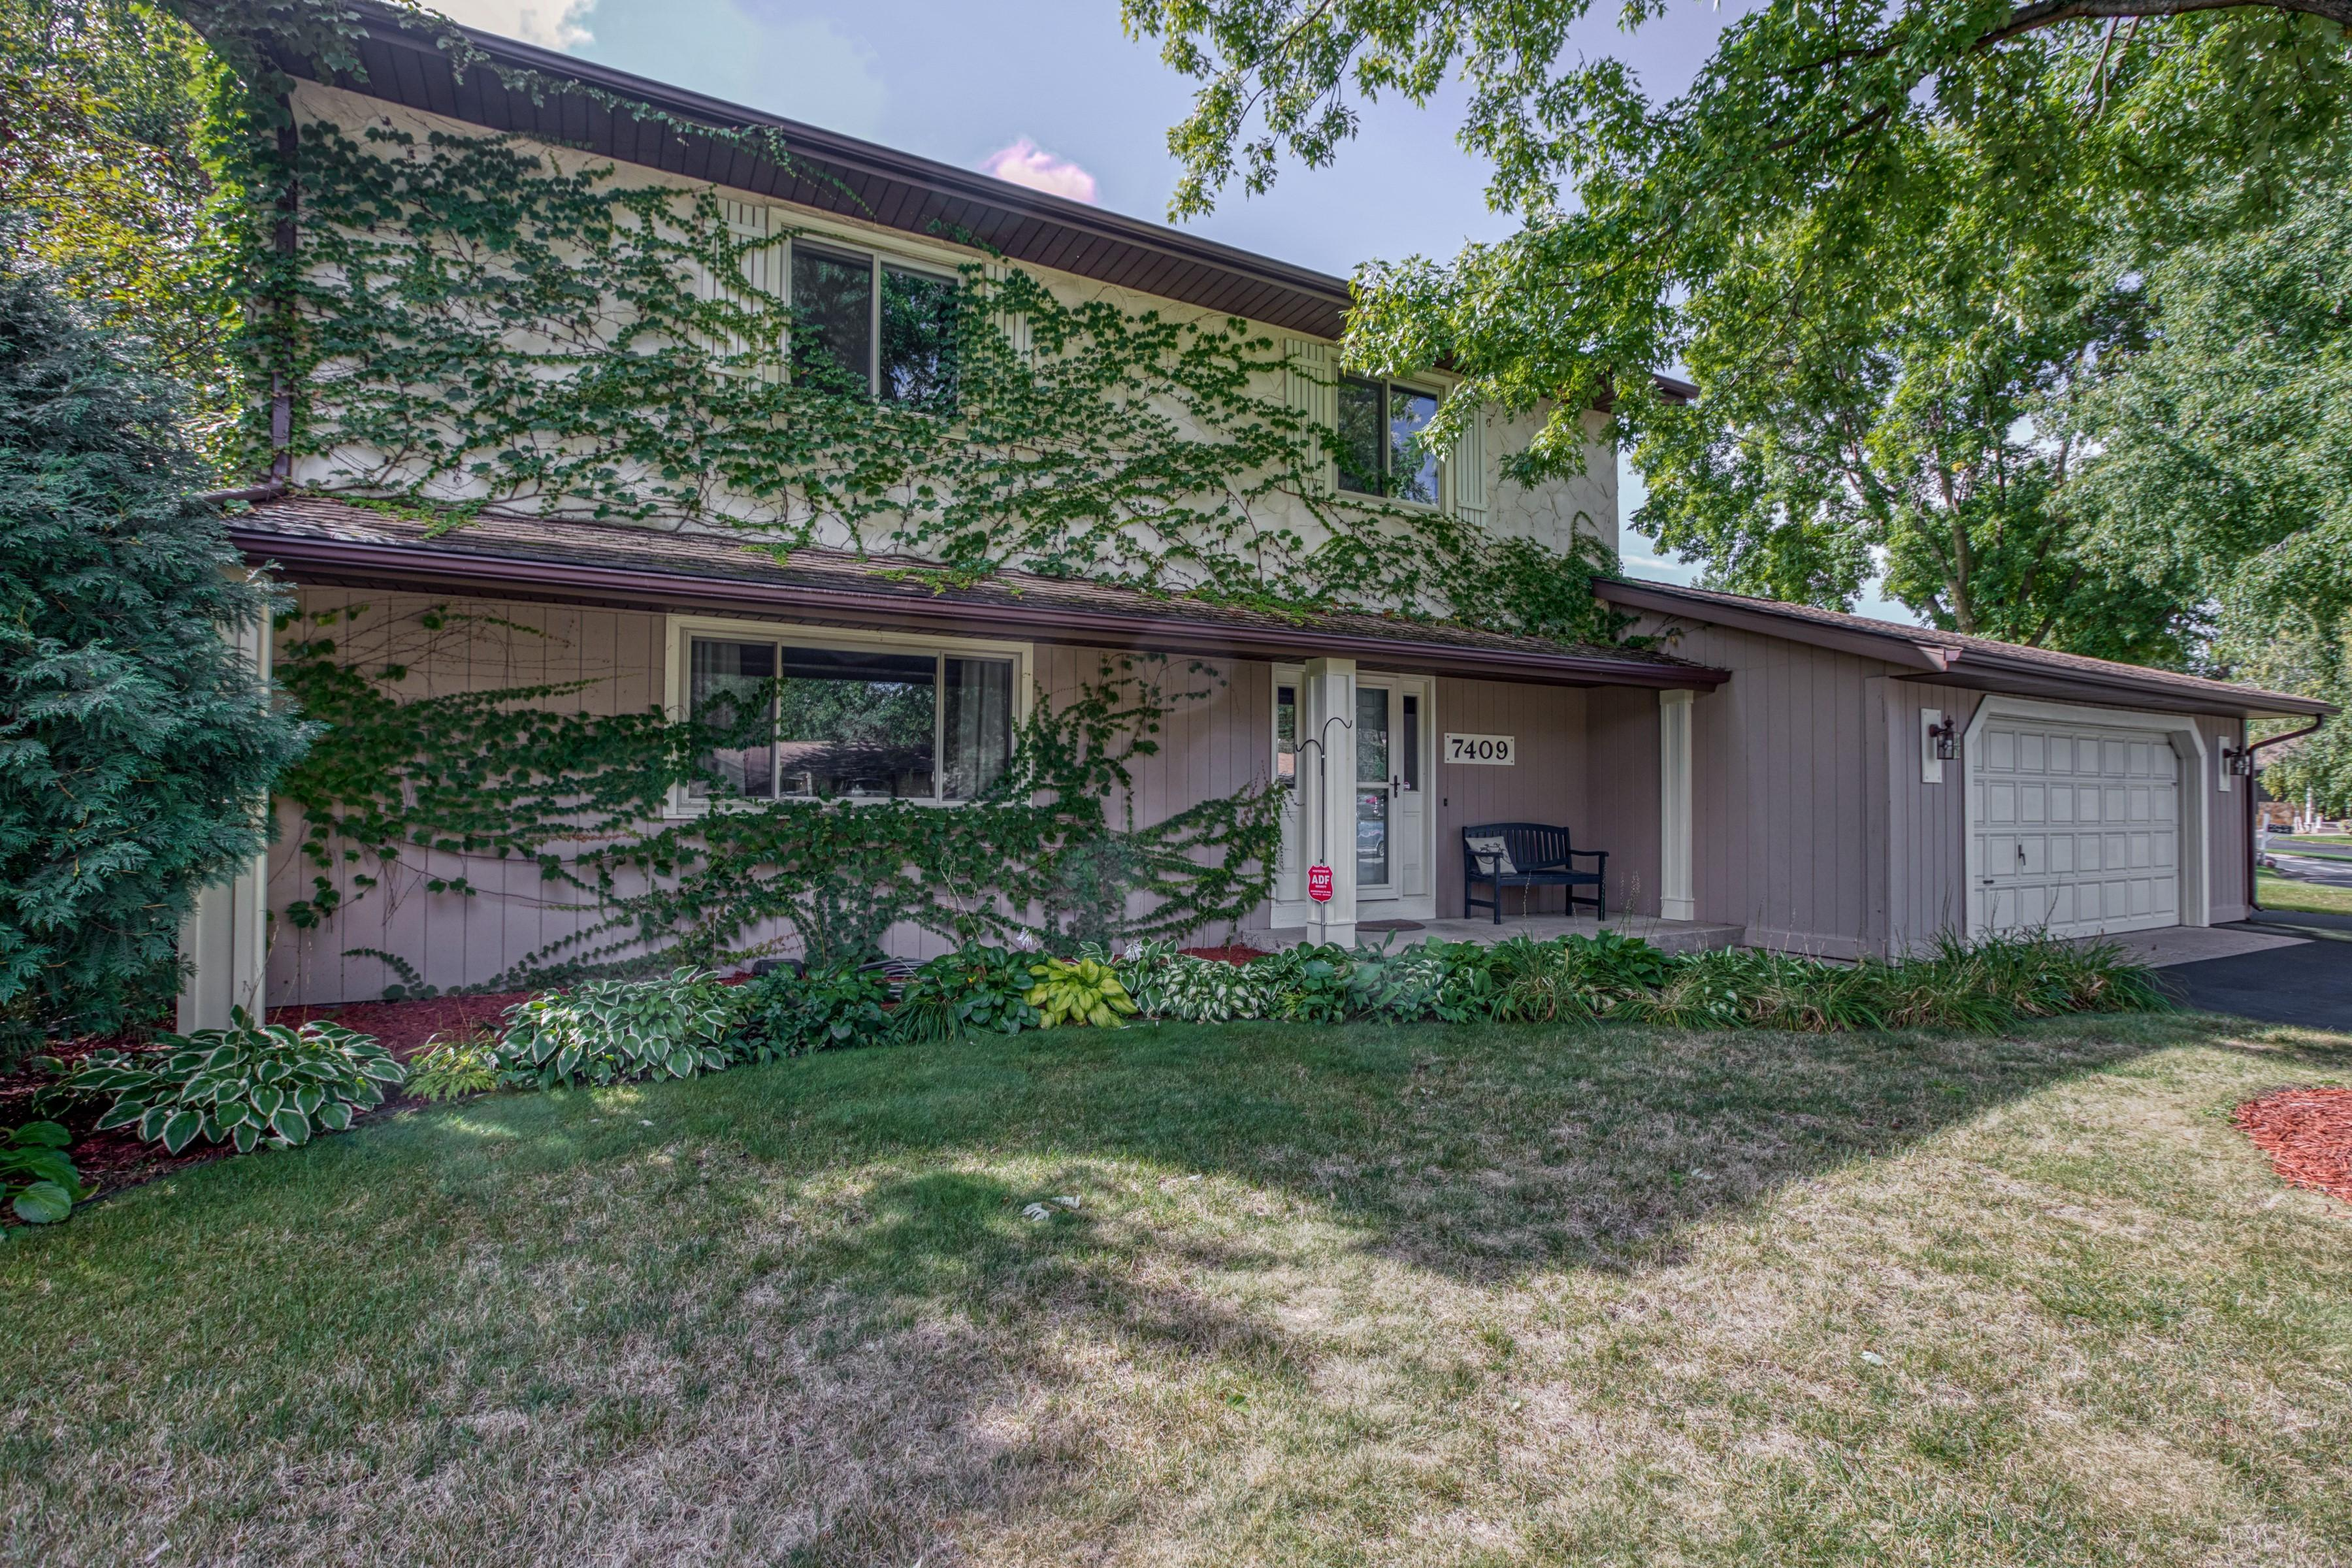 7409 Blaine Court Property Photo - Inver Grove Heights, MN real estate listing